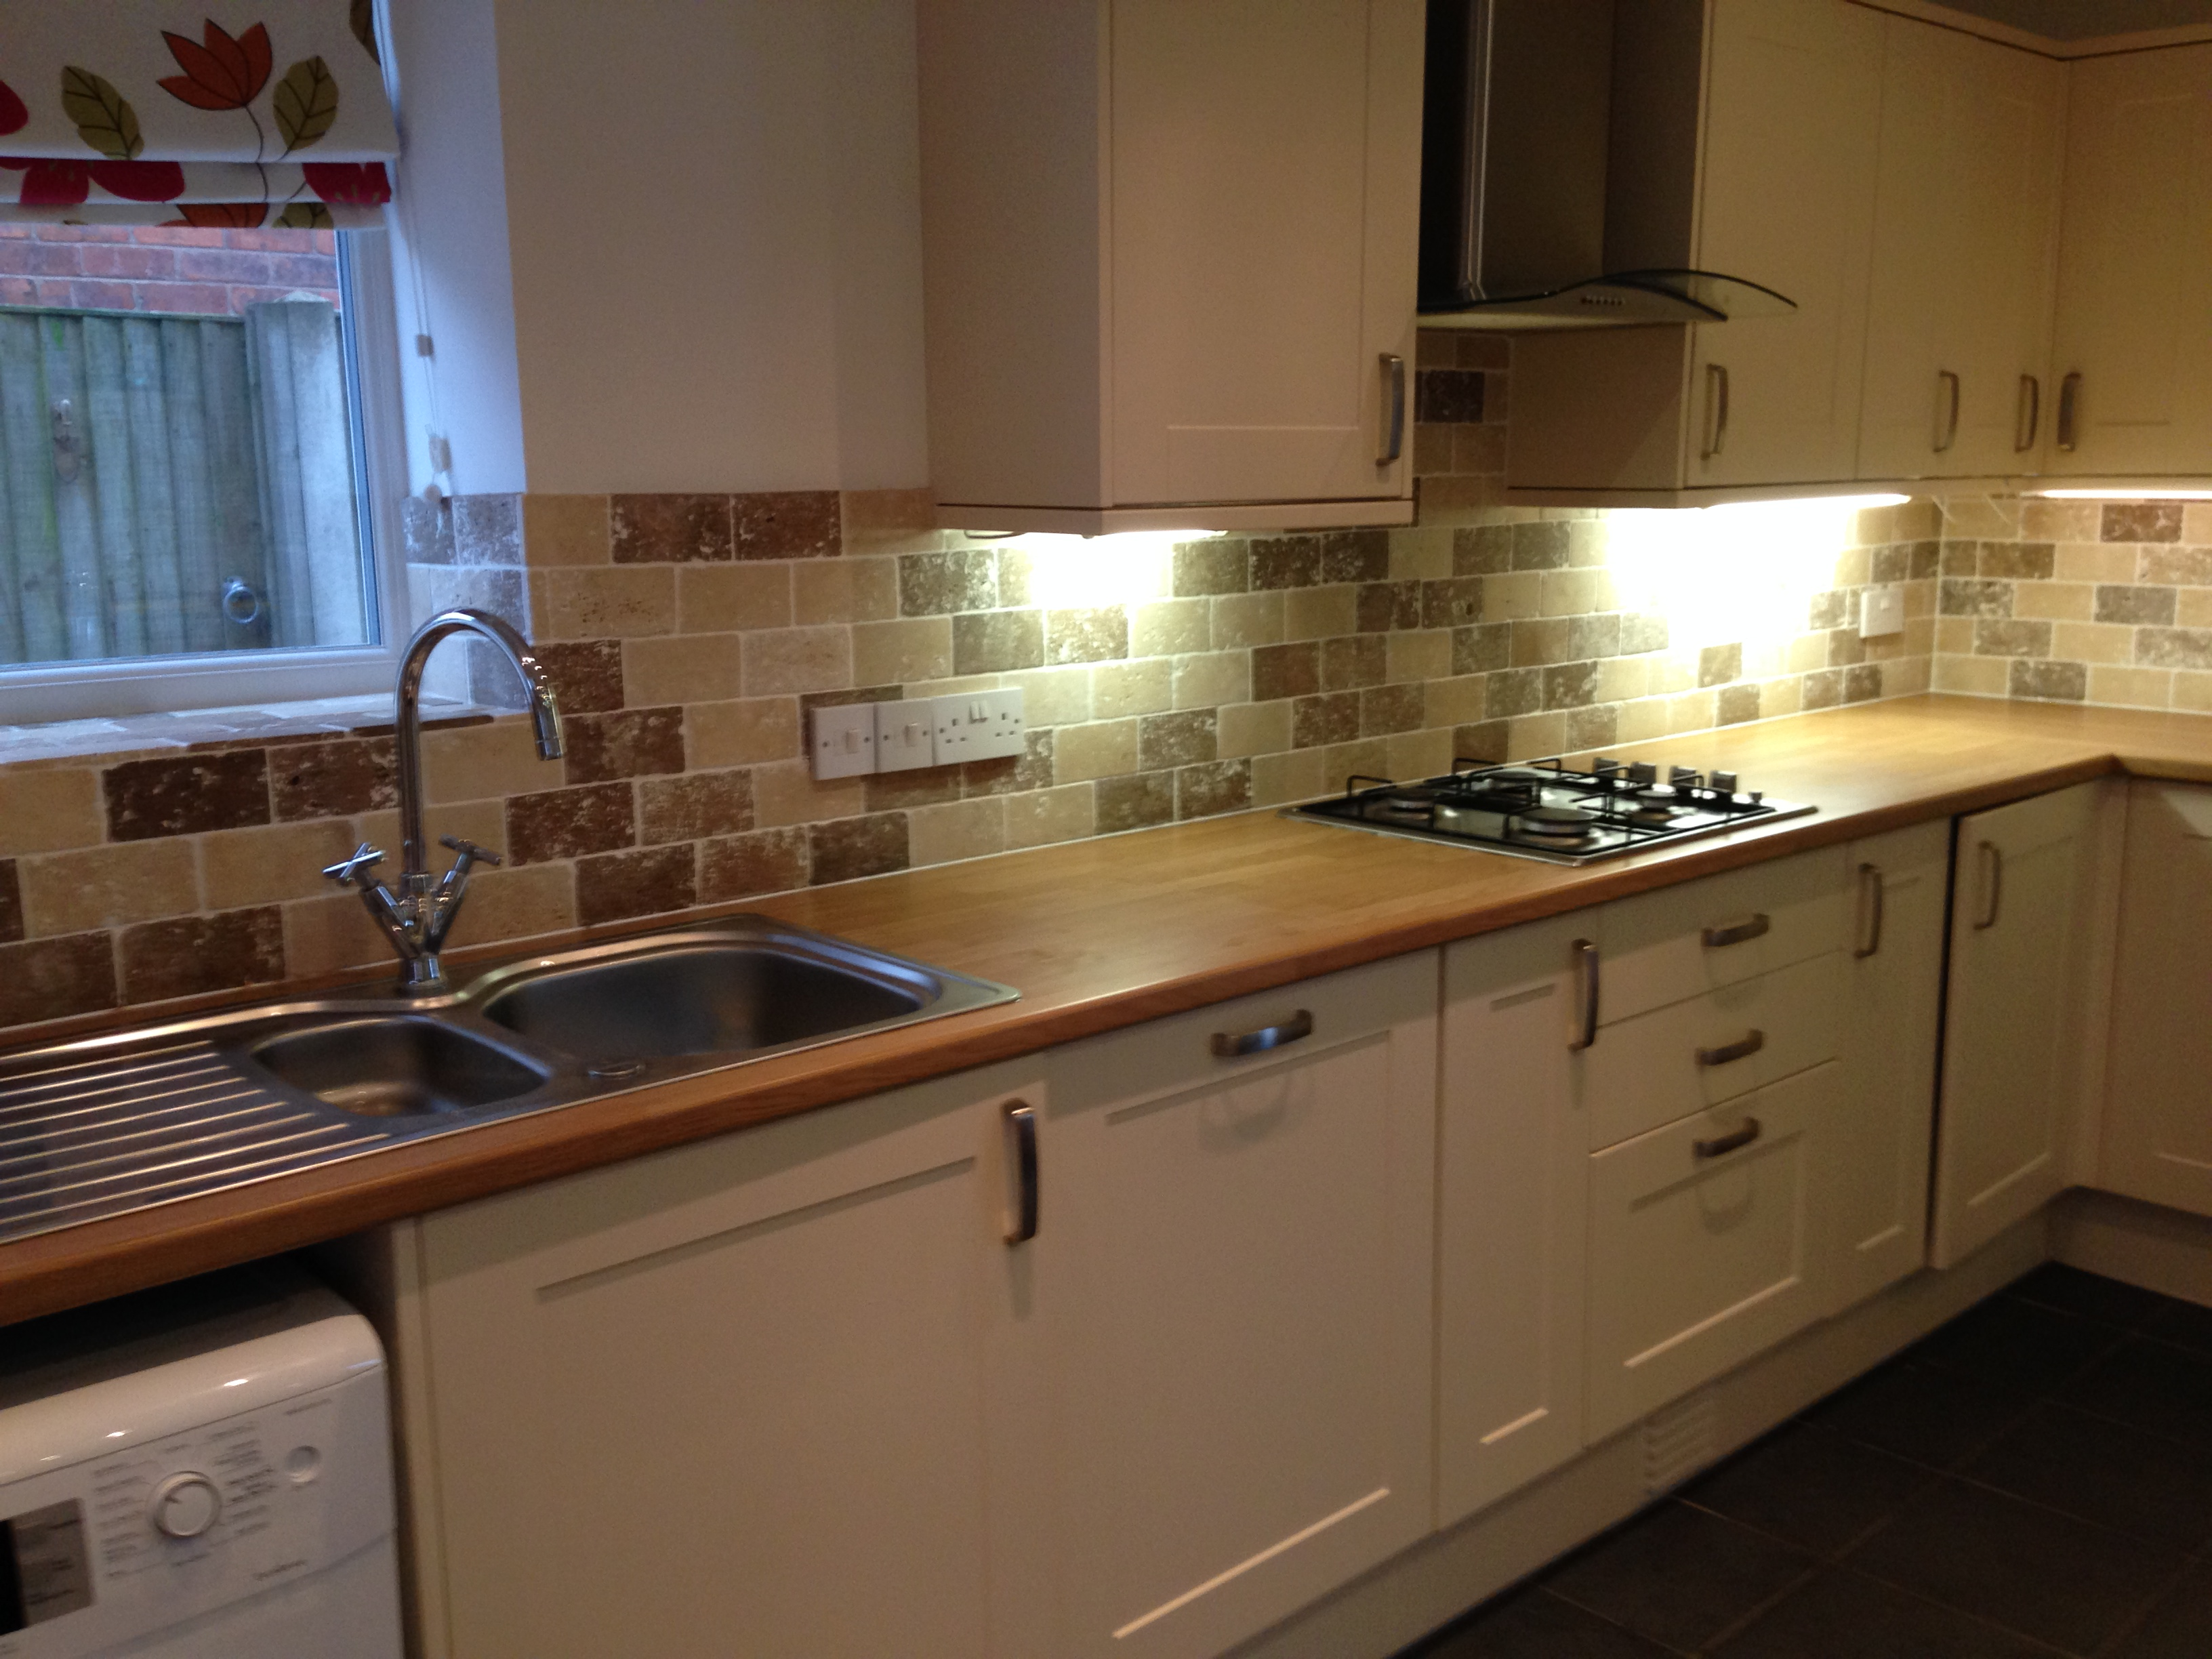 Completed kitchen installation